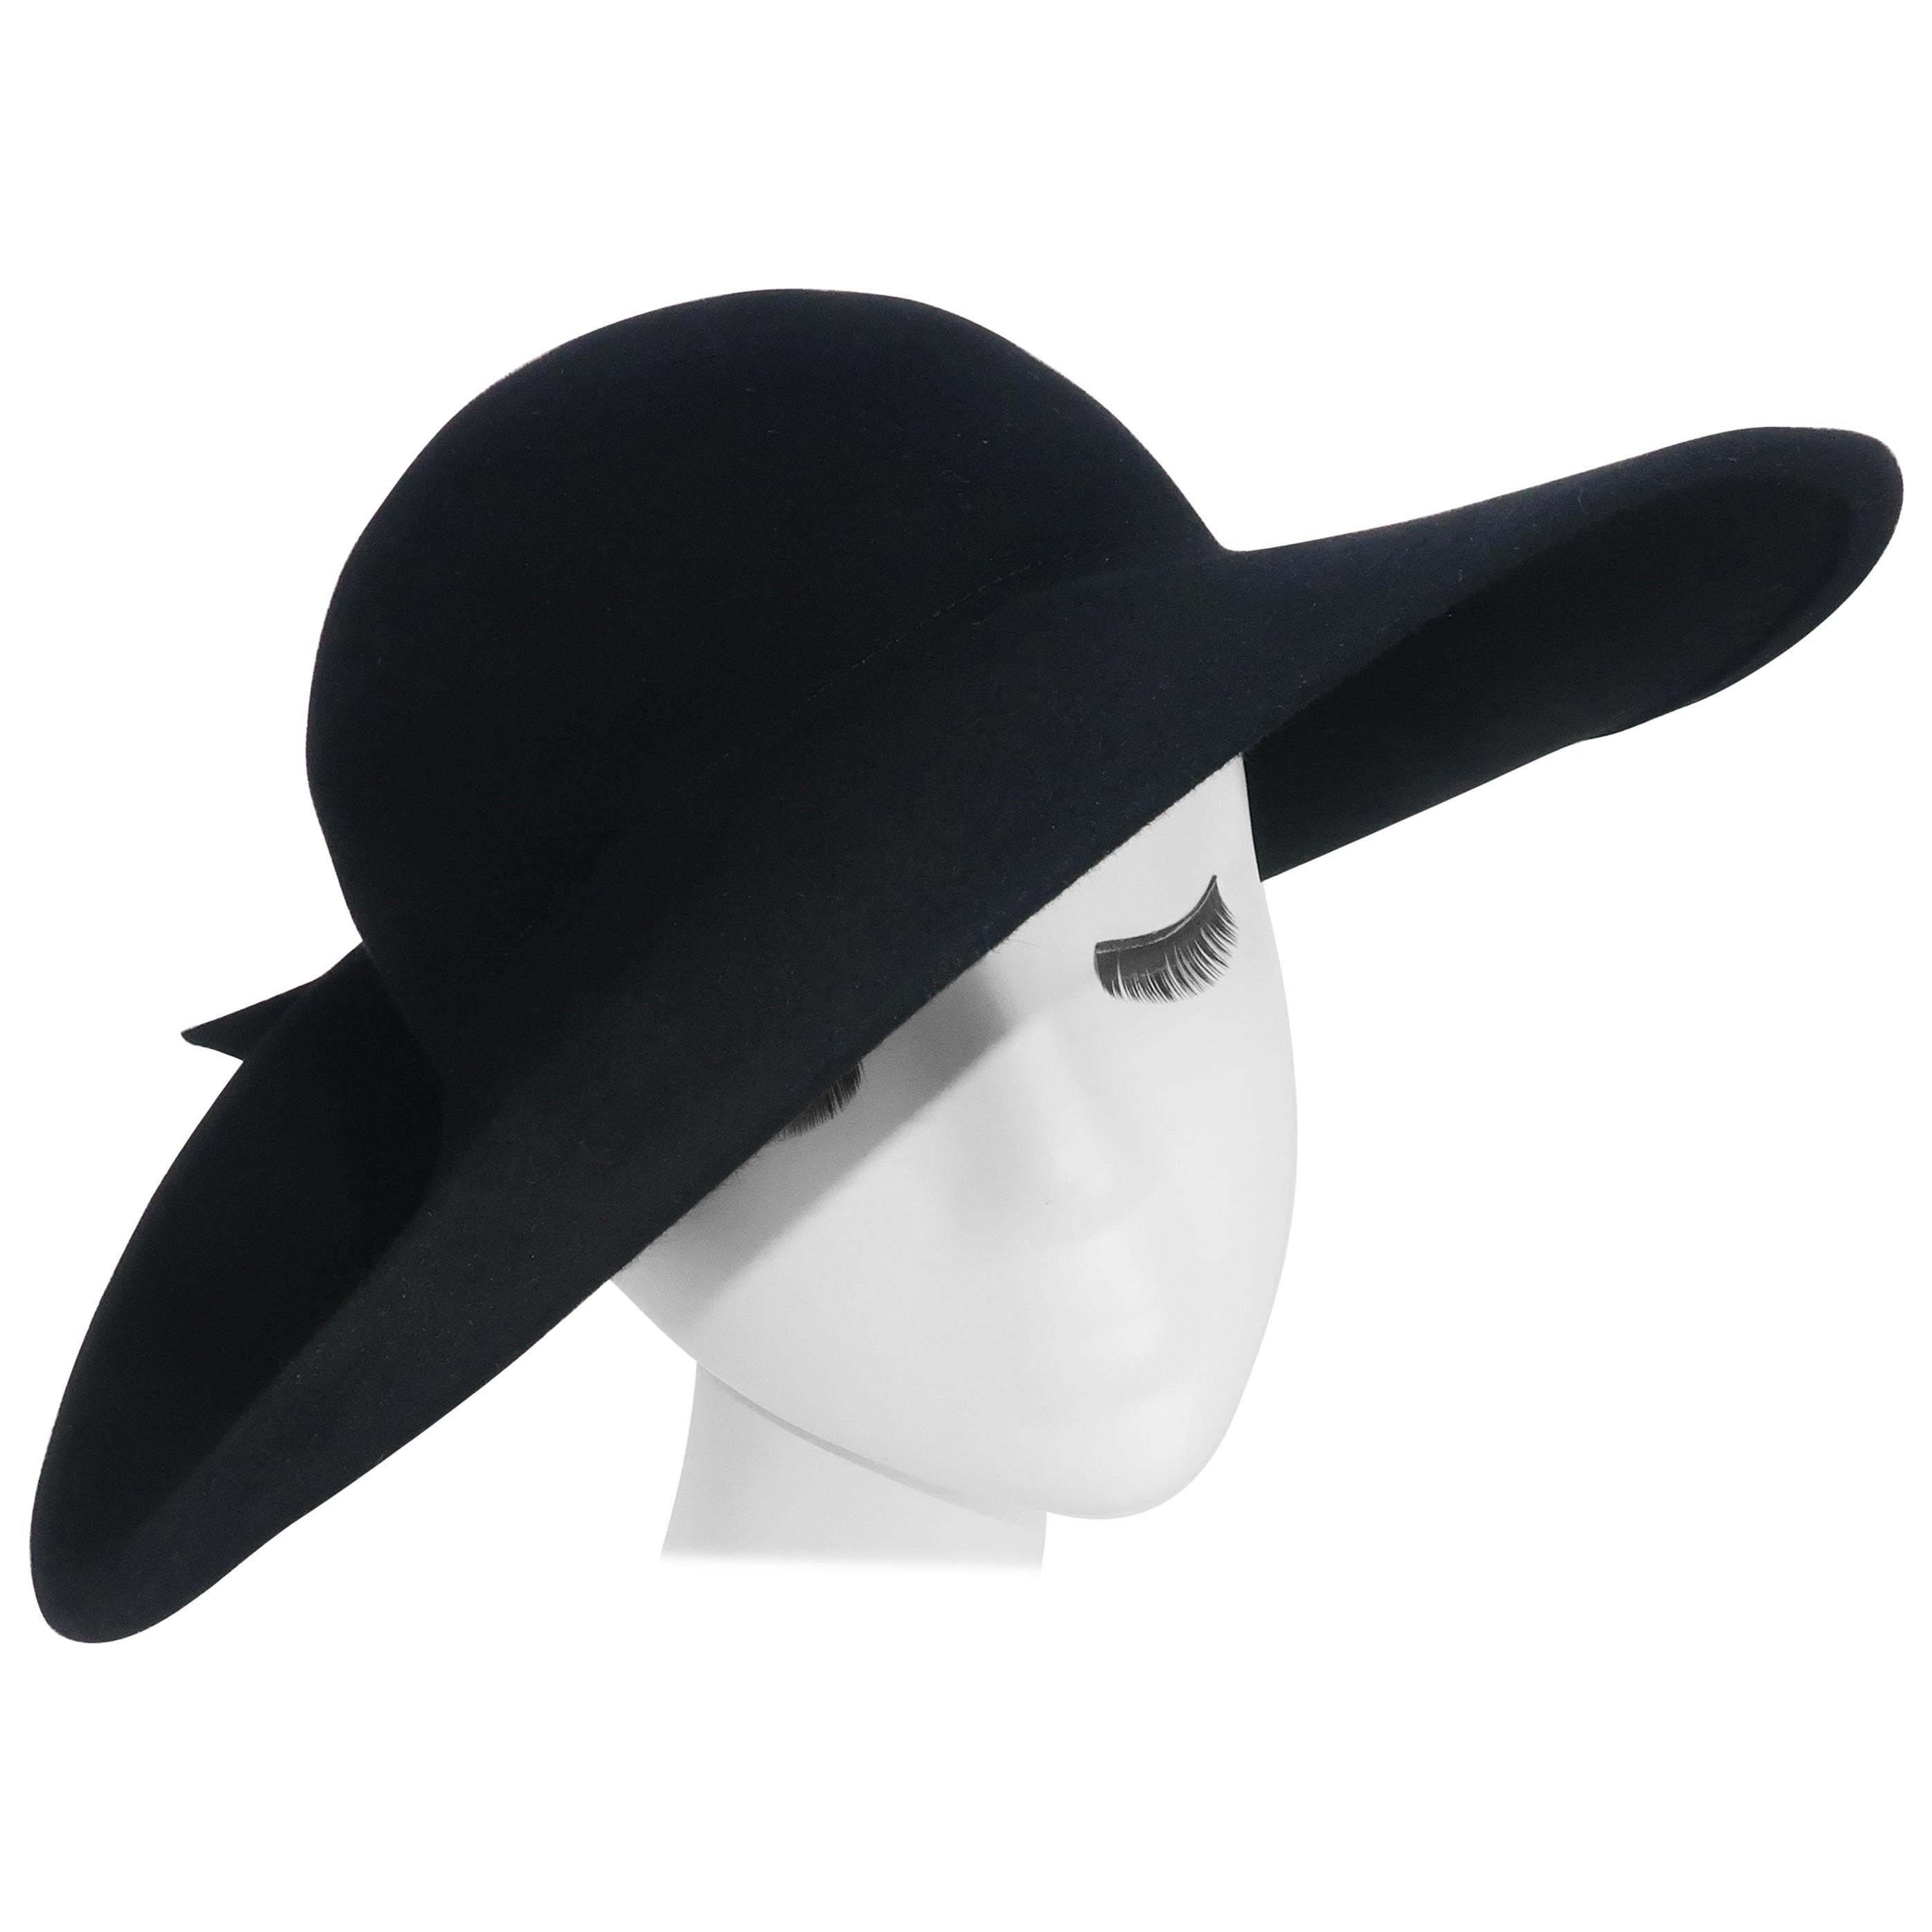 Frank Olive Black Wool Wide Brim Hat With Bow, 1980's